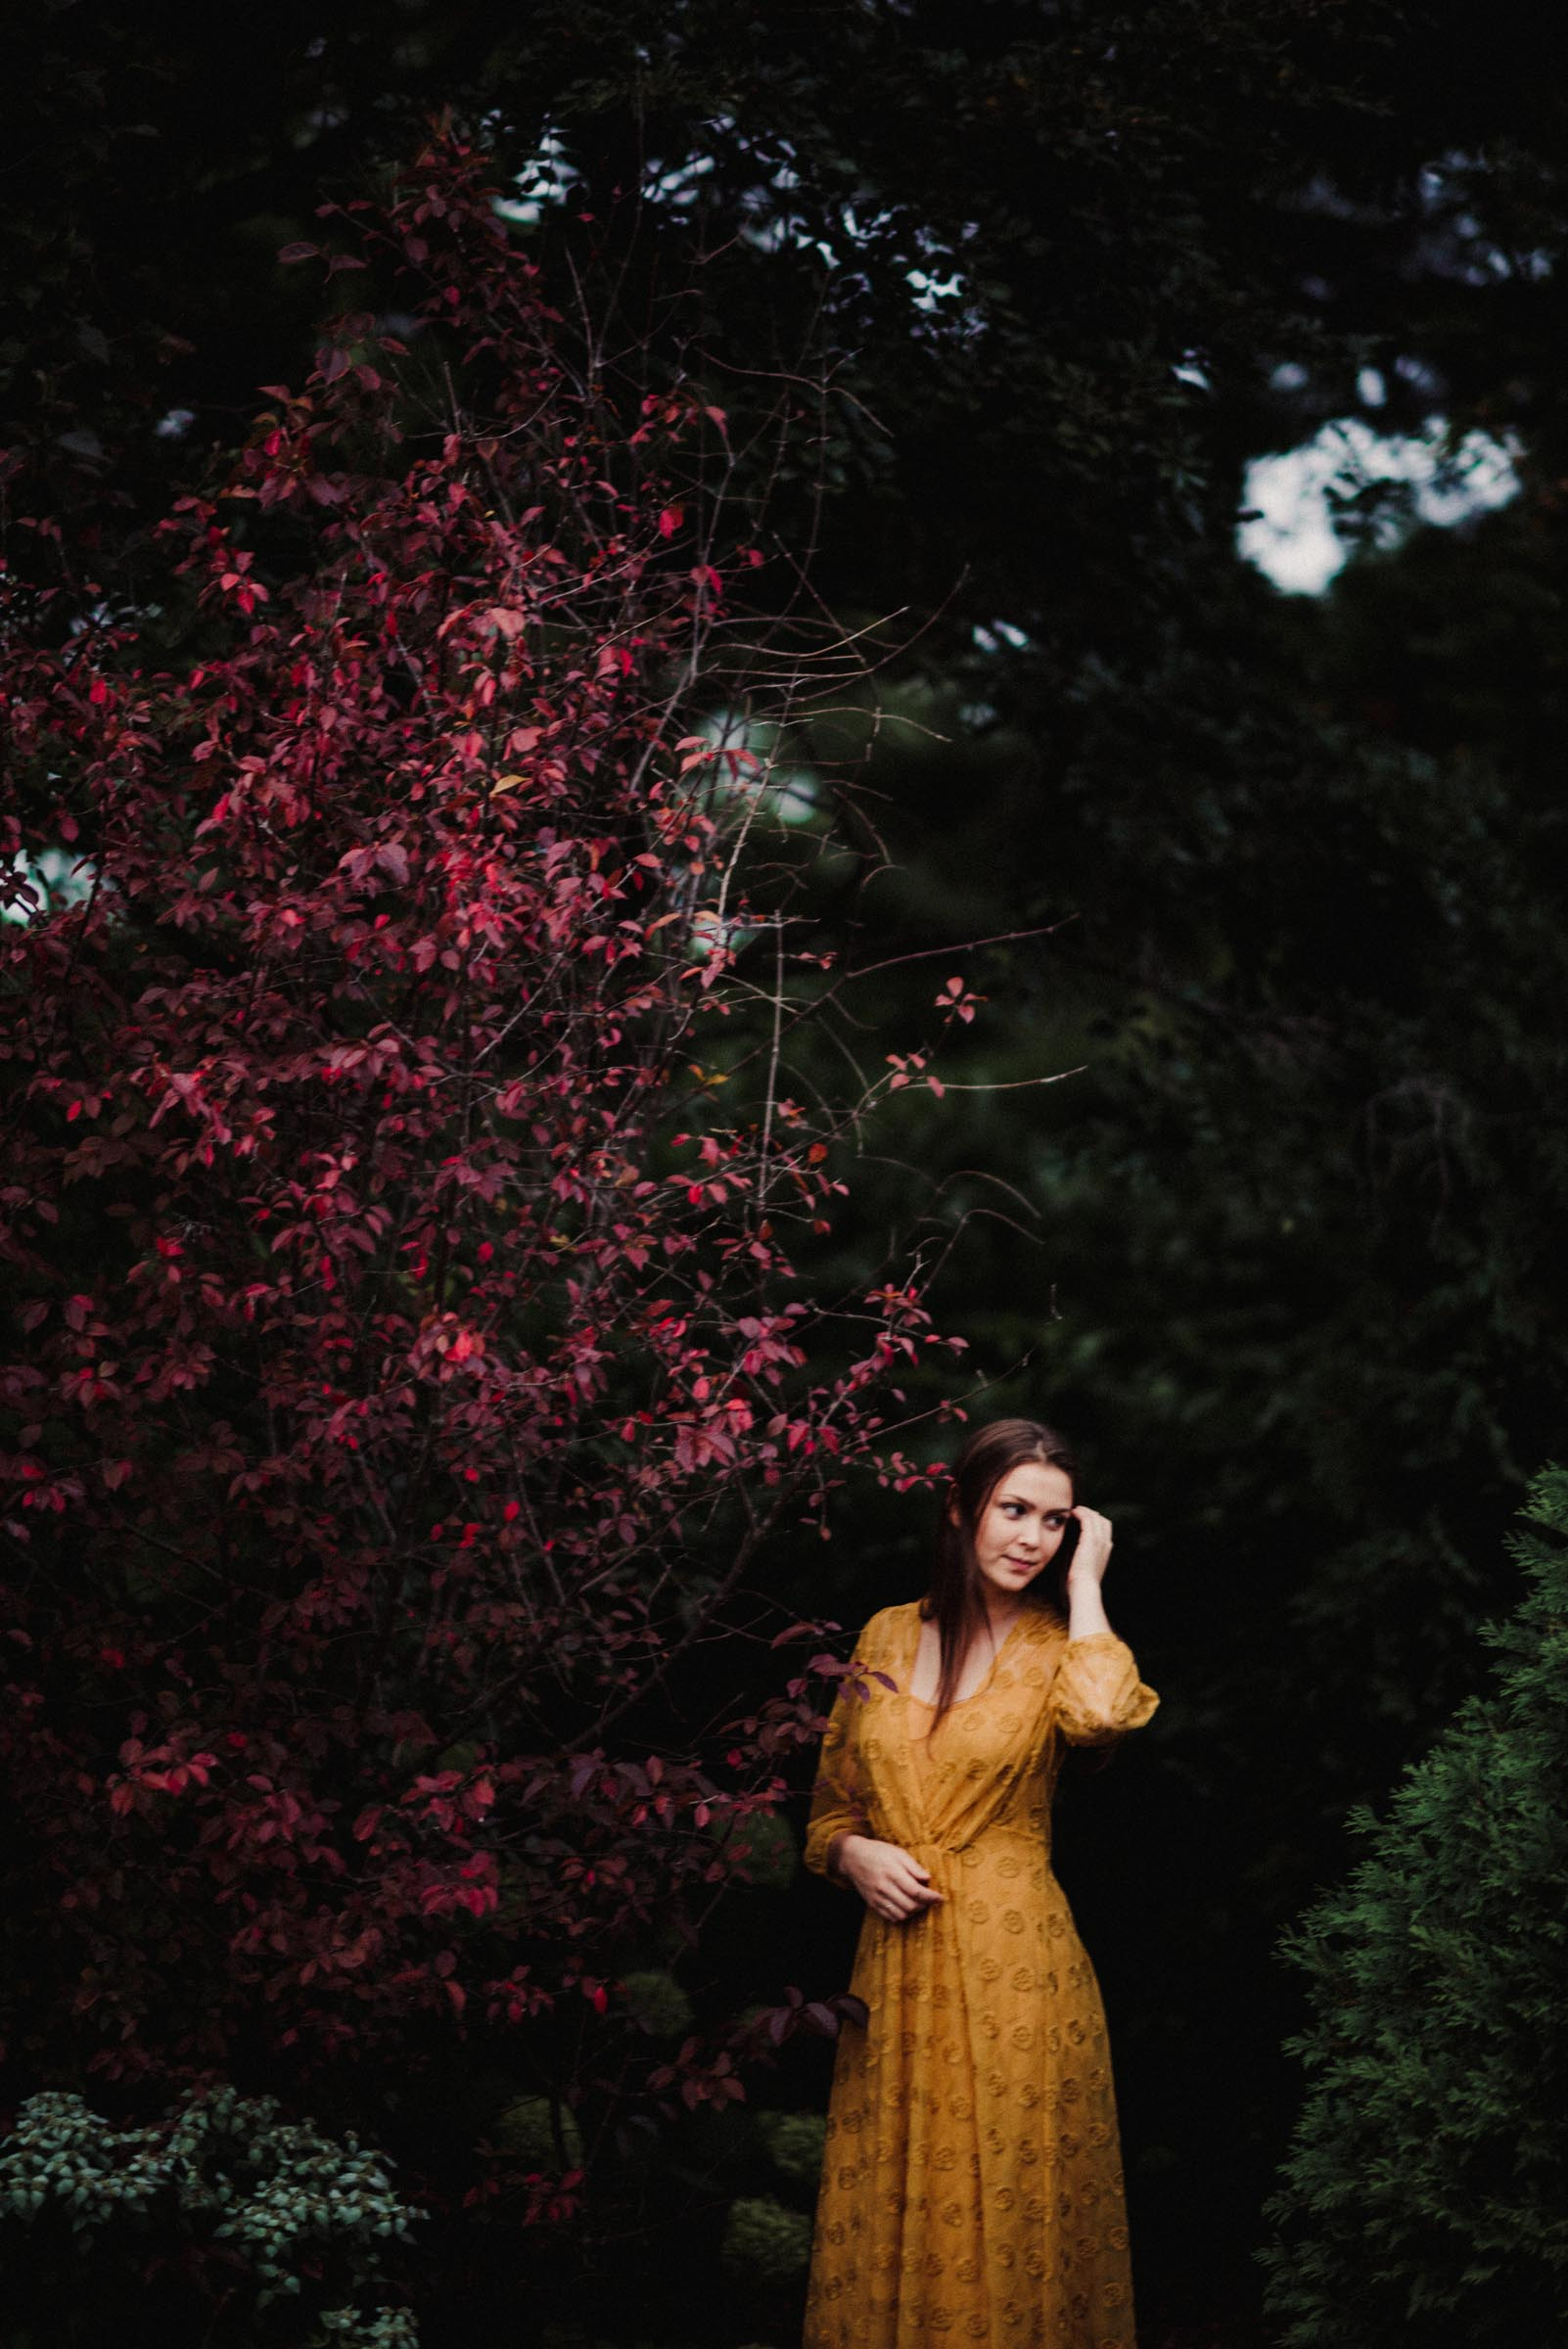 senior girl in yellow dress by red flowers